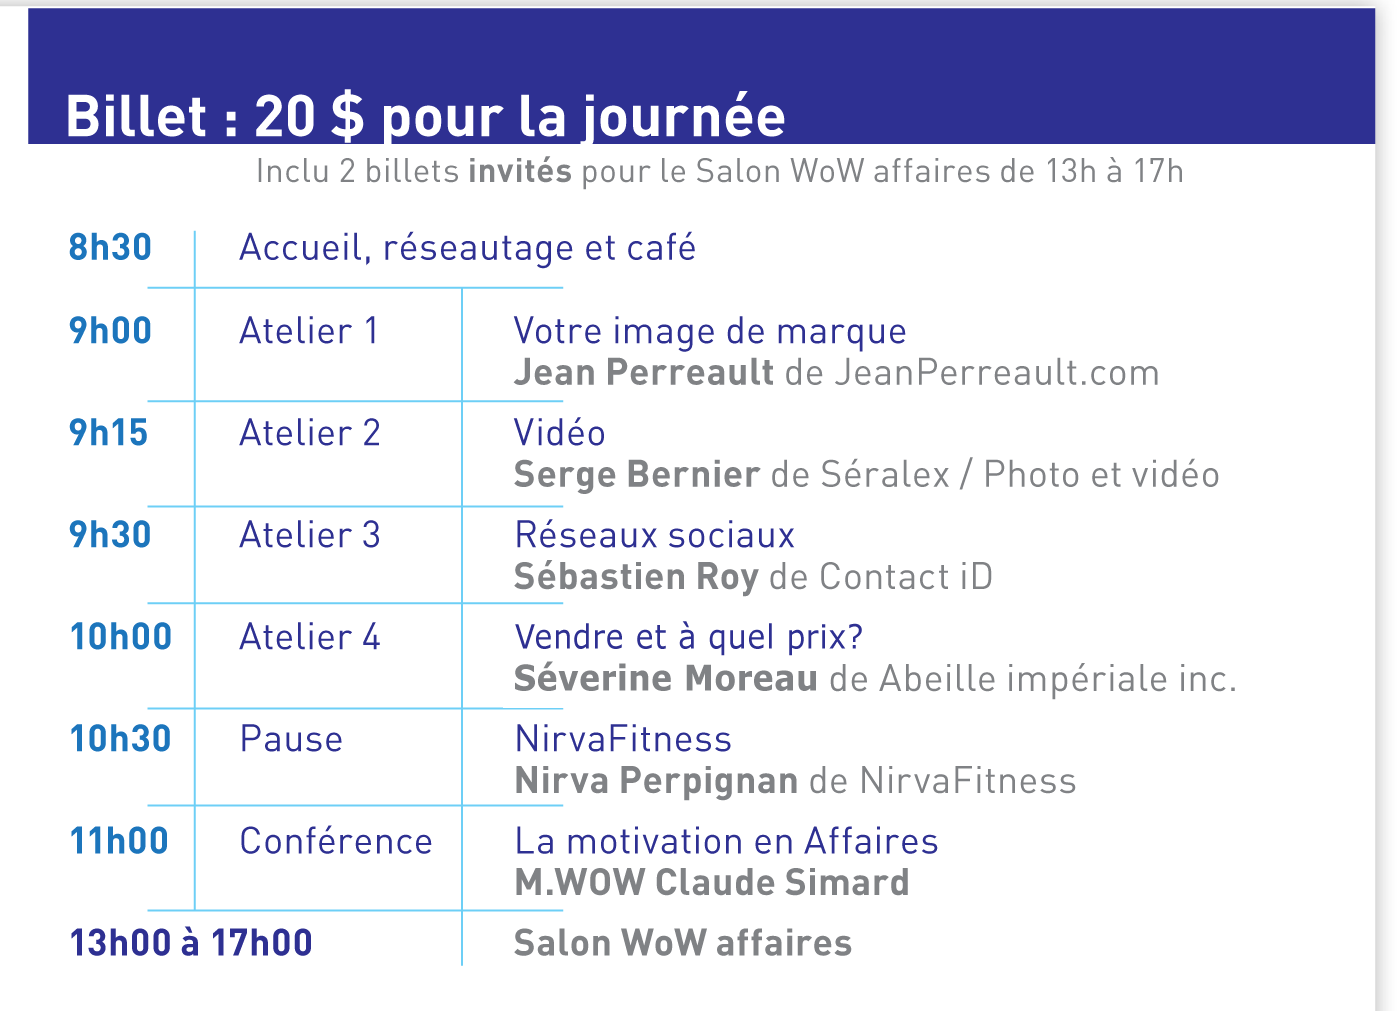 Programme de la journée WOW affaires